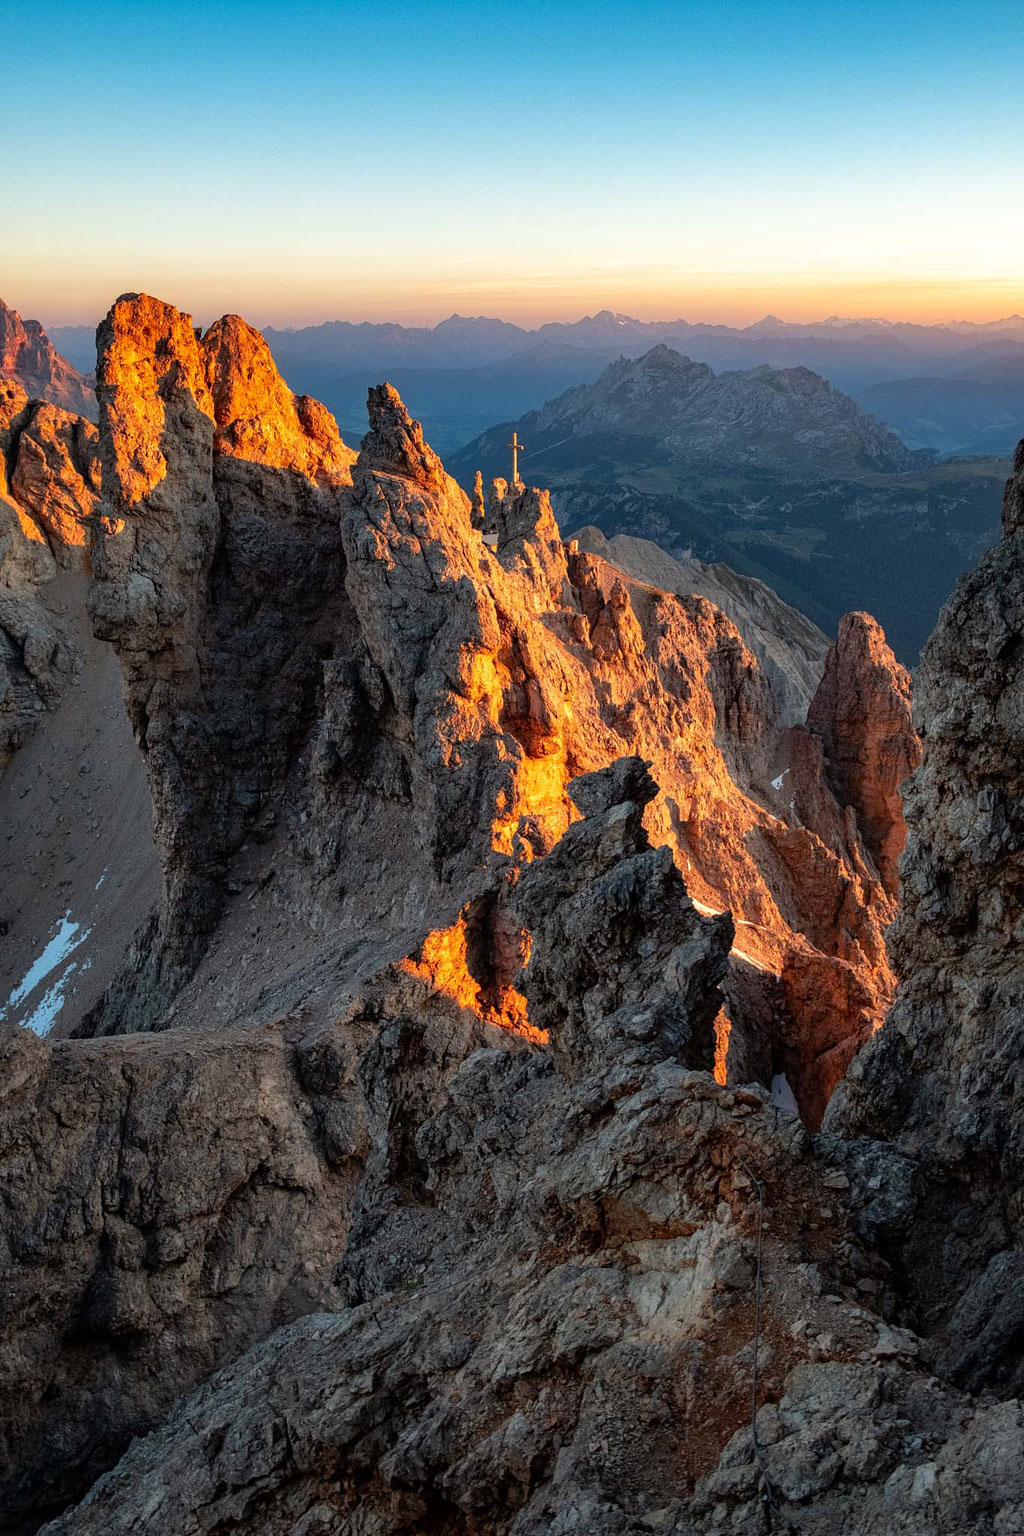 The weather rocks typical for the Dolomites landscape